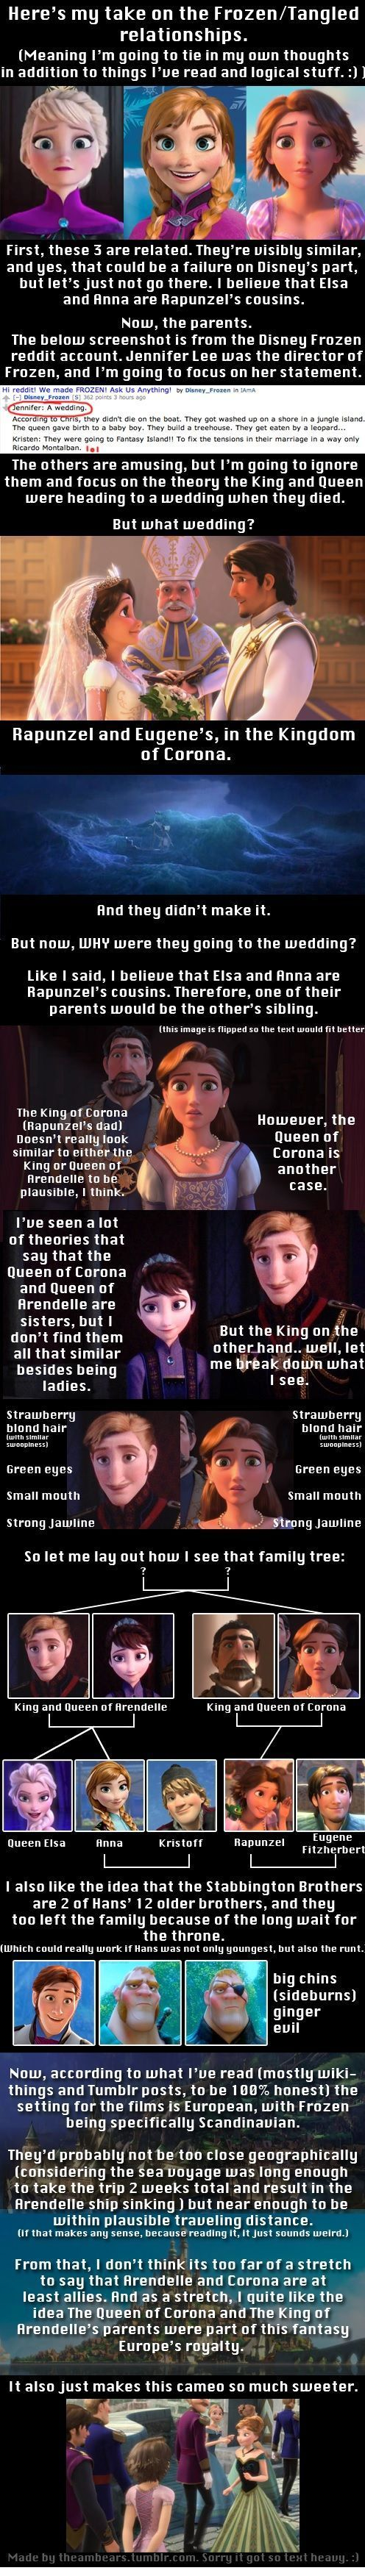 This popular Conspiracy Theory states that Disney's Frozen and Tangled seems to be related.